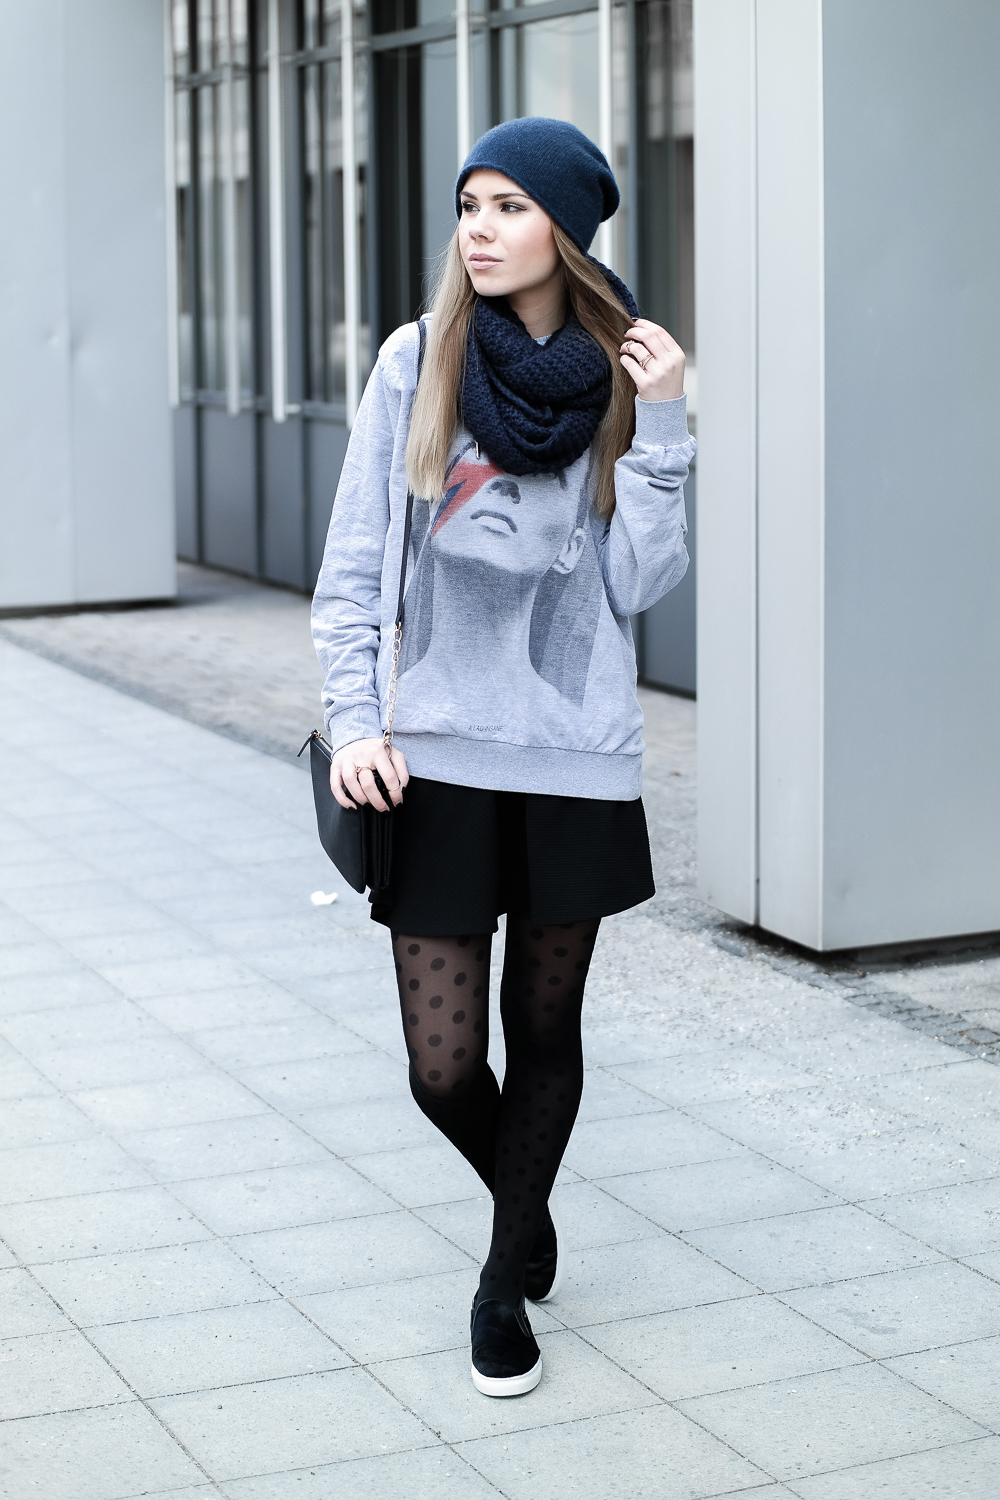 TheRubinRose-Fashion Blog-Mode Blog-München-Munich-Berlin-Hamburg-Goretex-Gore-Tex-Schuhe-Sneaker-Gewinnspiel-Teilnahmebedingungen-Boyfriend-Look-style-Streetstyle-Hoodie-Beanie-H&M-Accessorize-COS-ELEVENPARIS